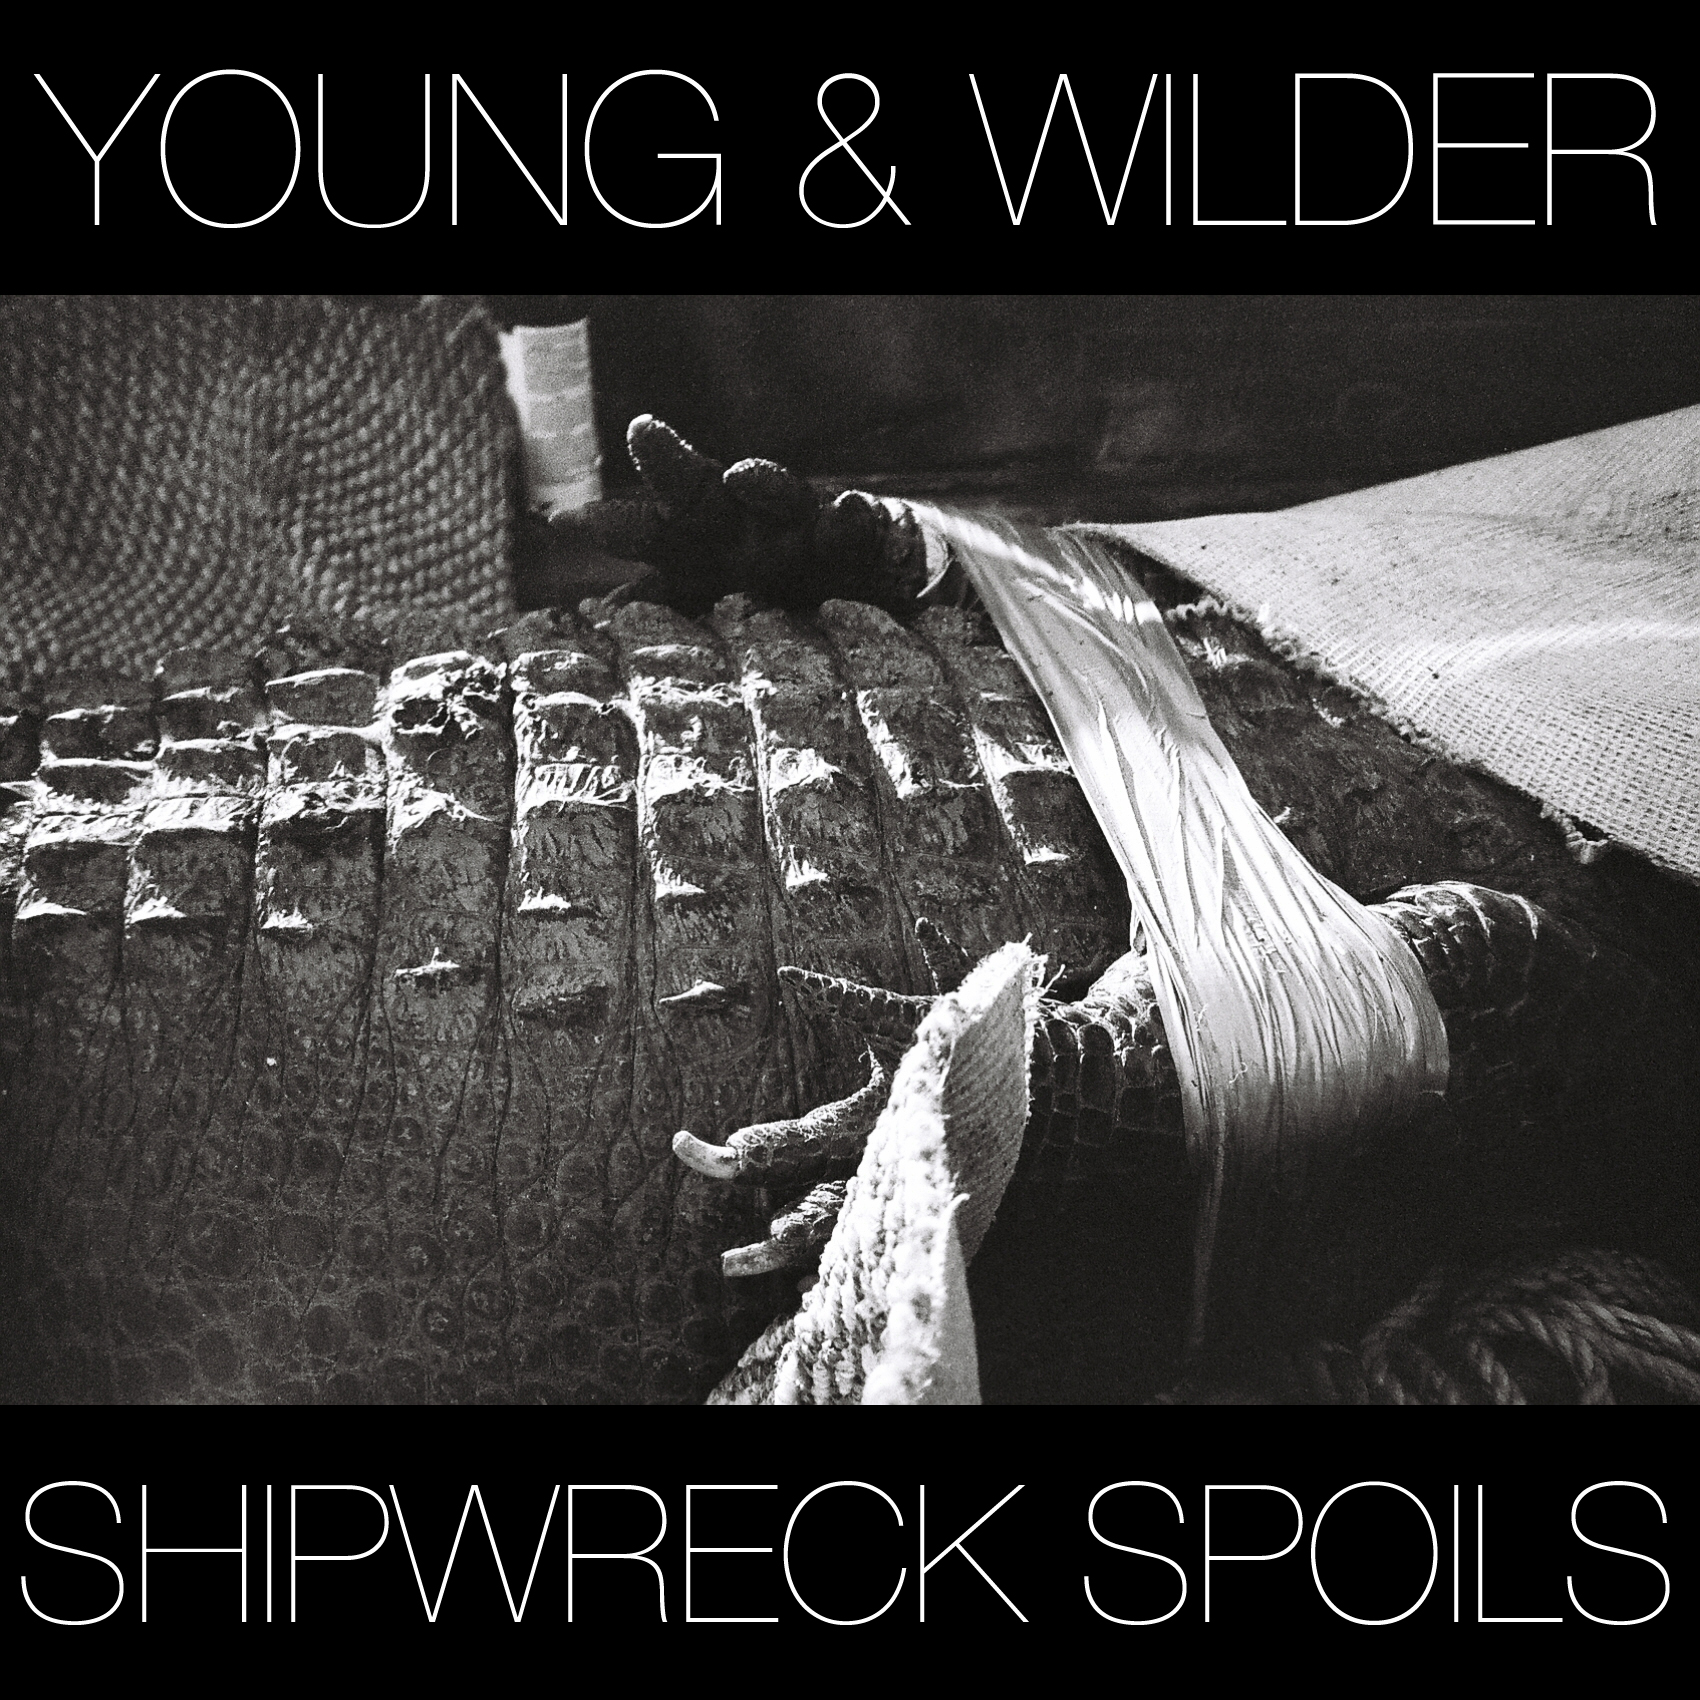 Young & Wilder - Shipwreck Spoils